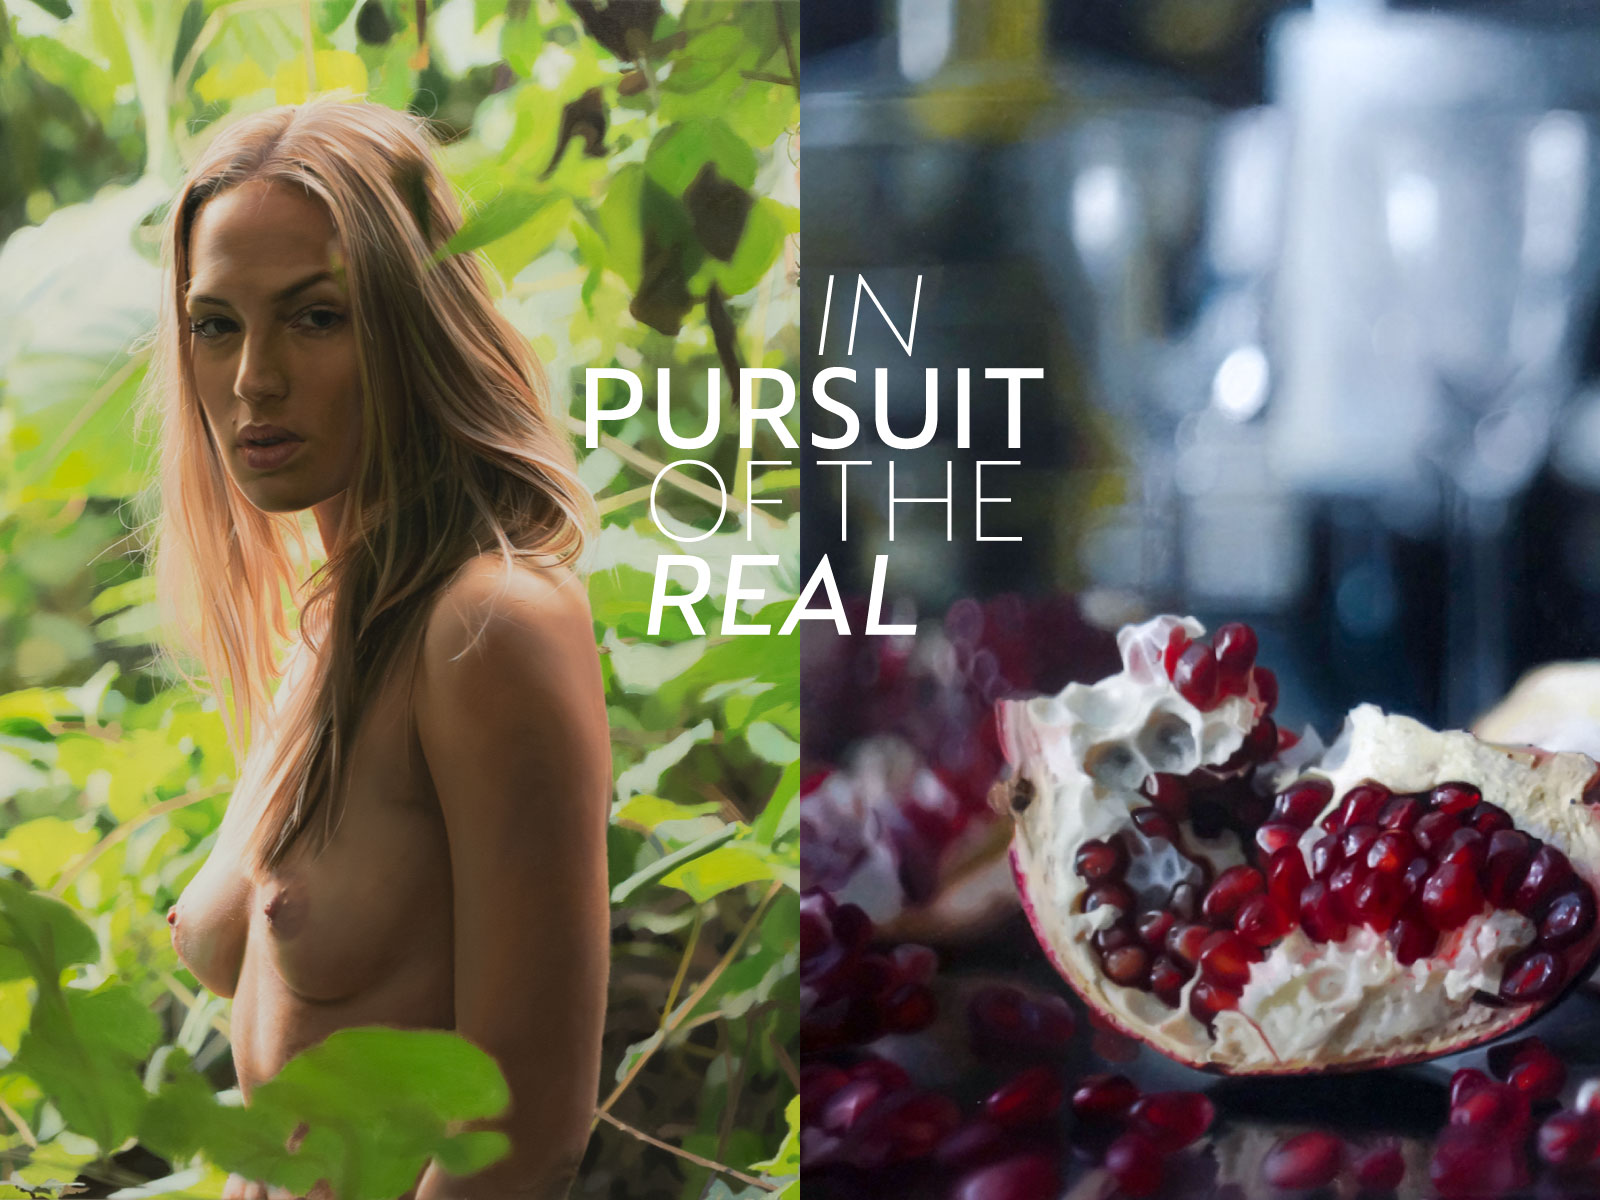 Yigal Ozeri & Jan Mikulka / In Pursuit of the Real exhibition will remain opened until 31/5 2019